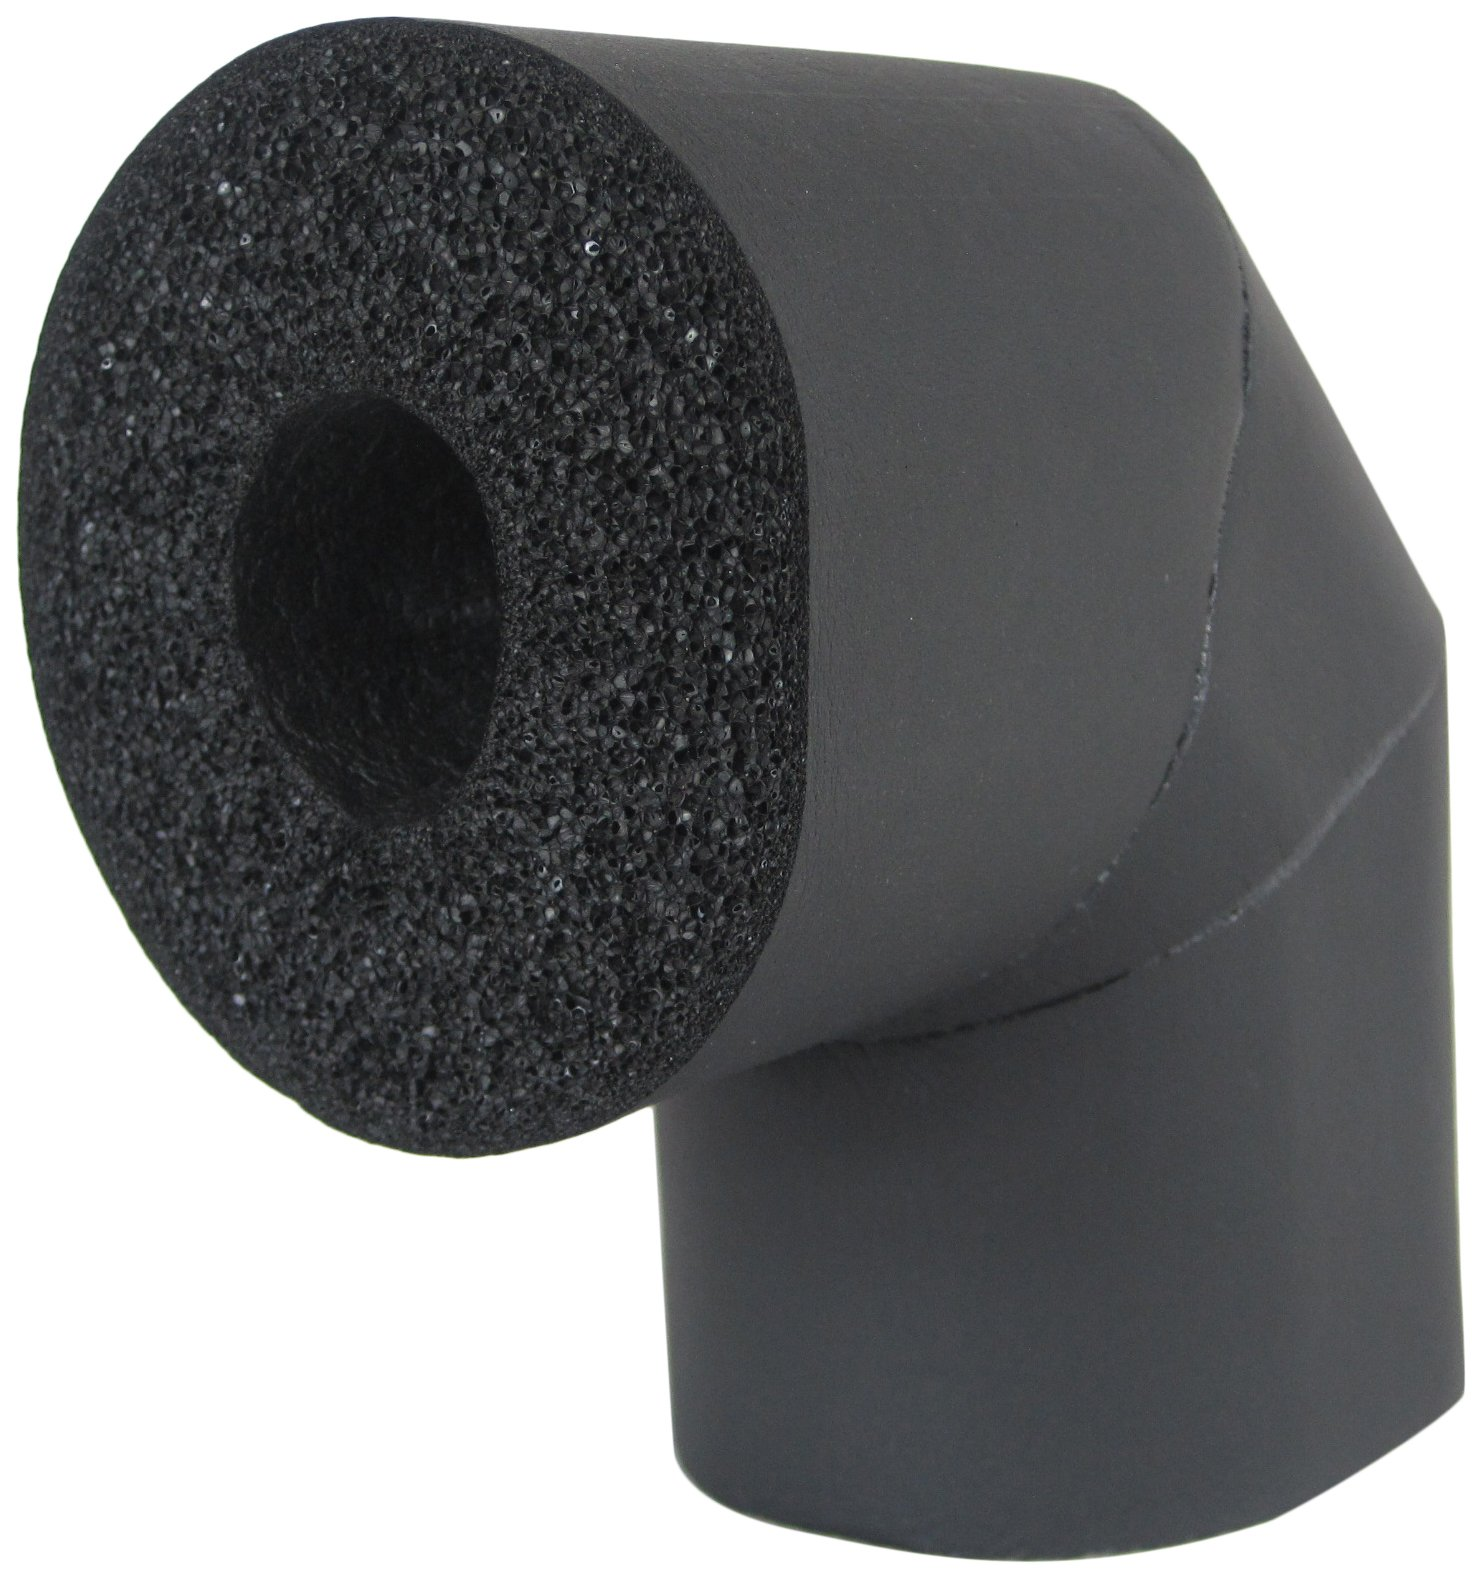 K-Flex 801-LRE-100078 Closed Cell Elastomeric Insulation, 90 degree Elbow, 7/8'' Nominal Insulation ID, 1'' Wall Thickness, Black (Pack of 21) by K-Flex (Image #1)